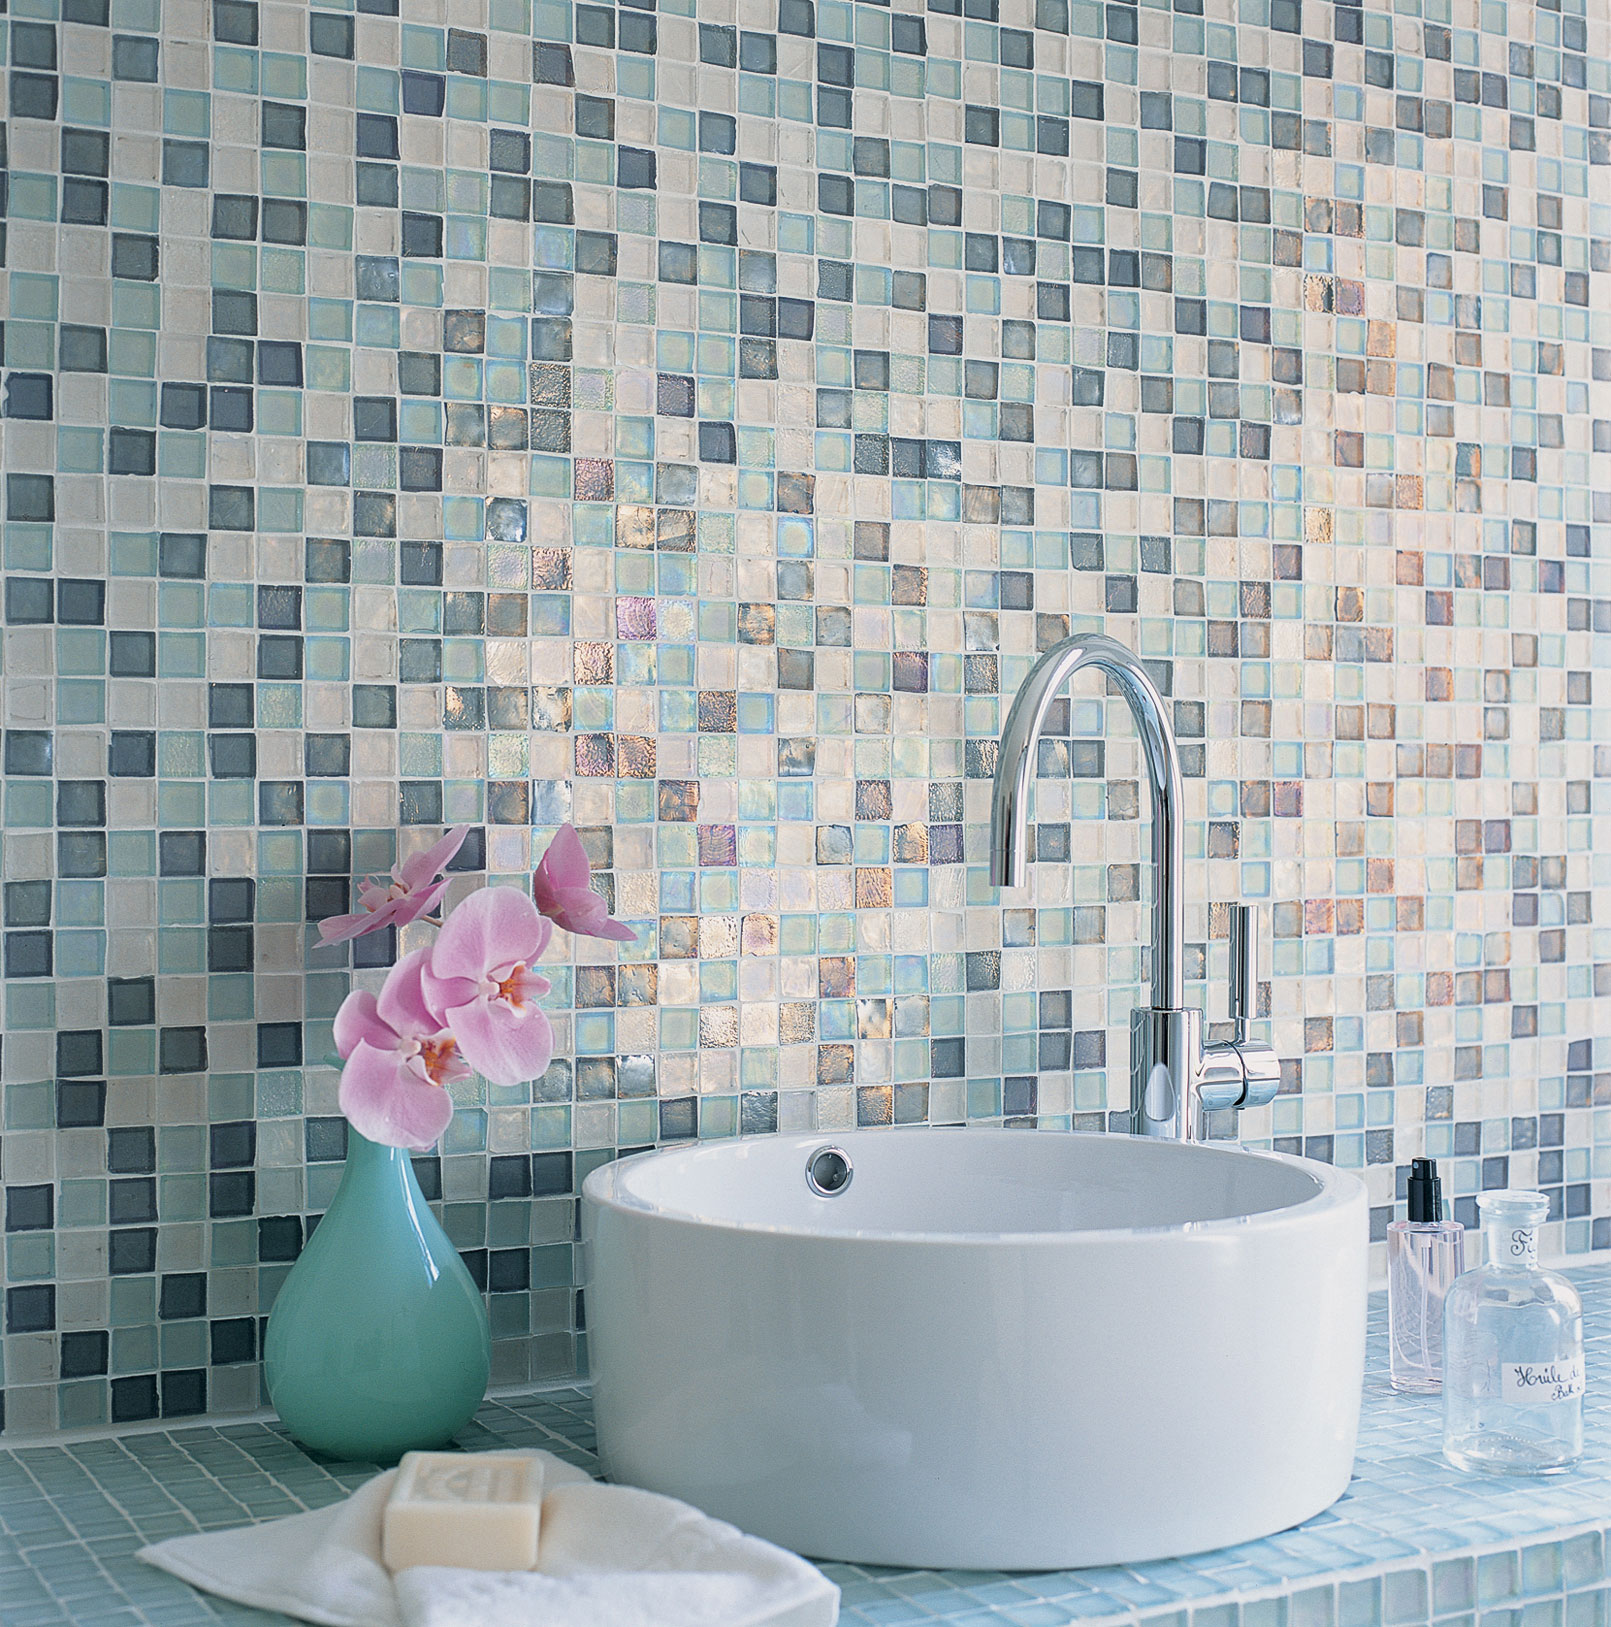 Give your bathroom a new look with these creative ideas for walls ...